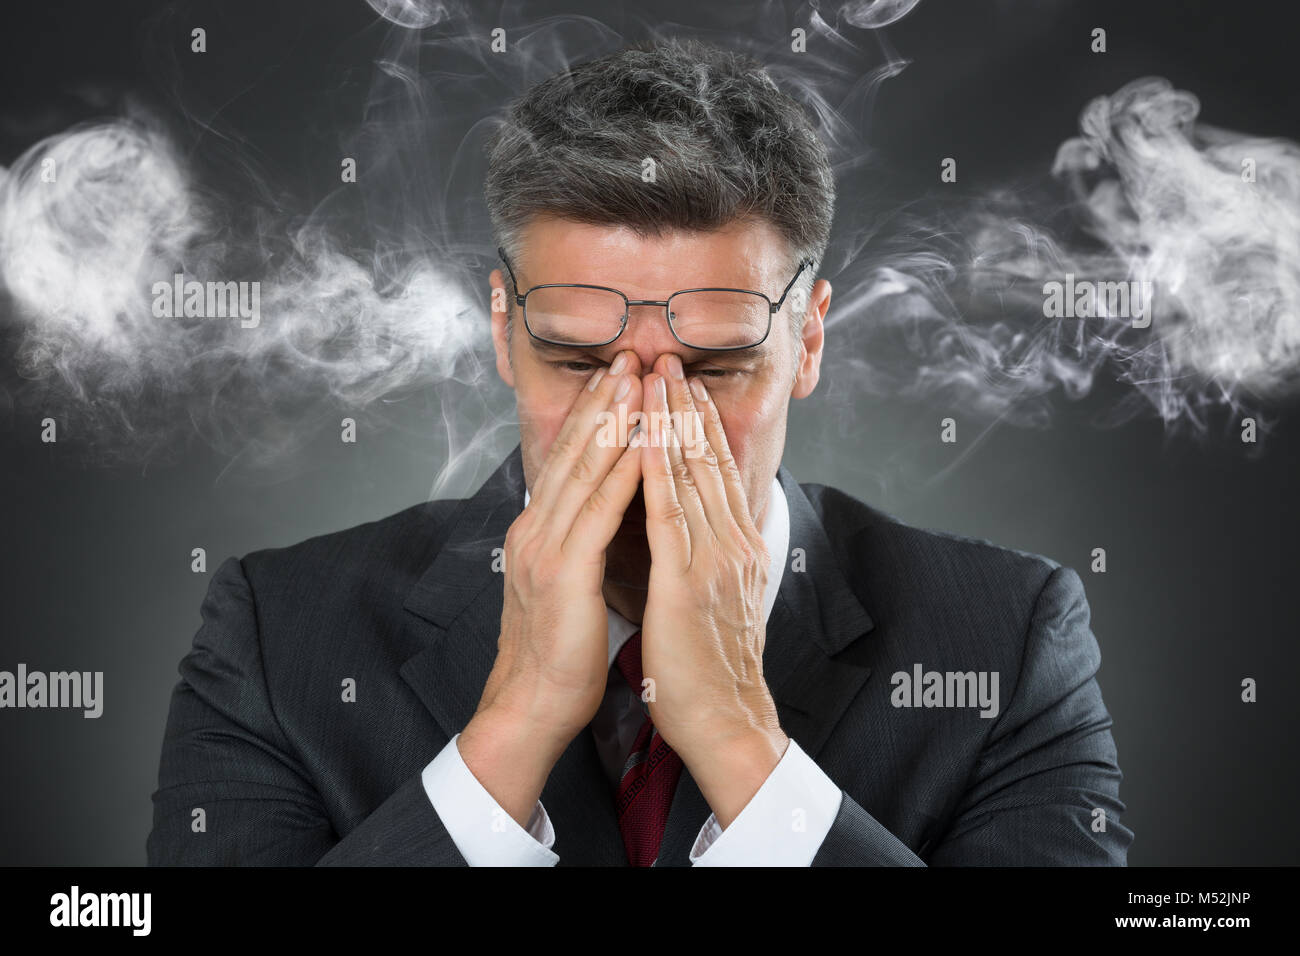 Portrait Of Businessman Covering Mouth From Smoke Over Black Background - Stock Image